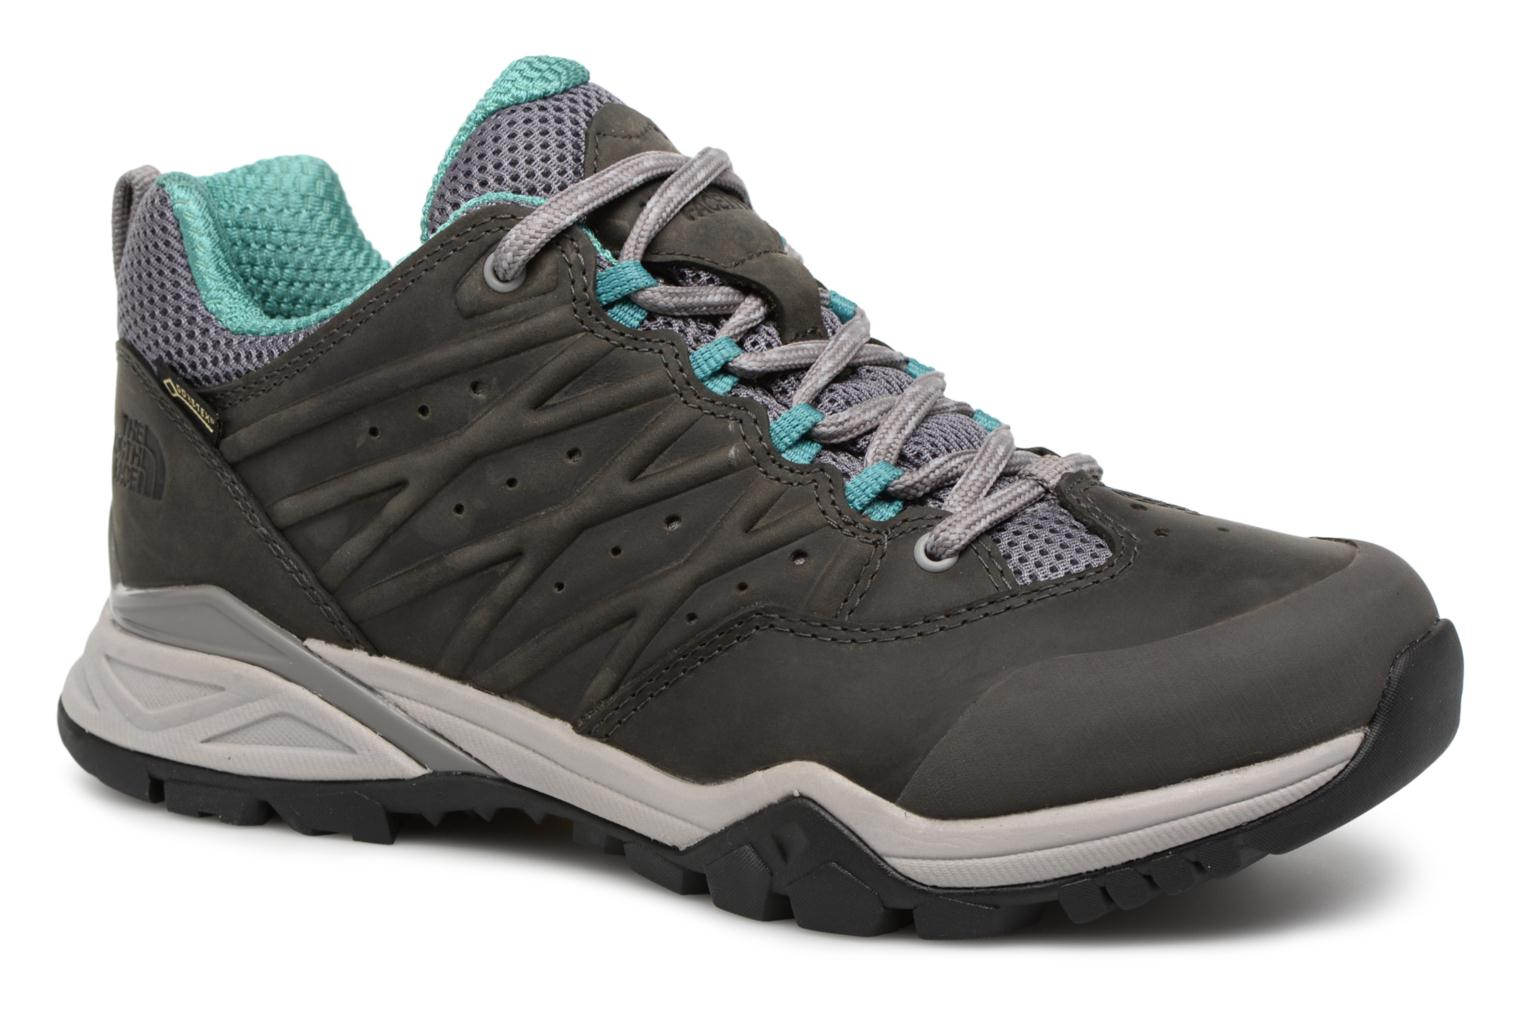 Chaussures de sport The North Face Hedgehog Hike II GTX W Gris vue détail/paire